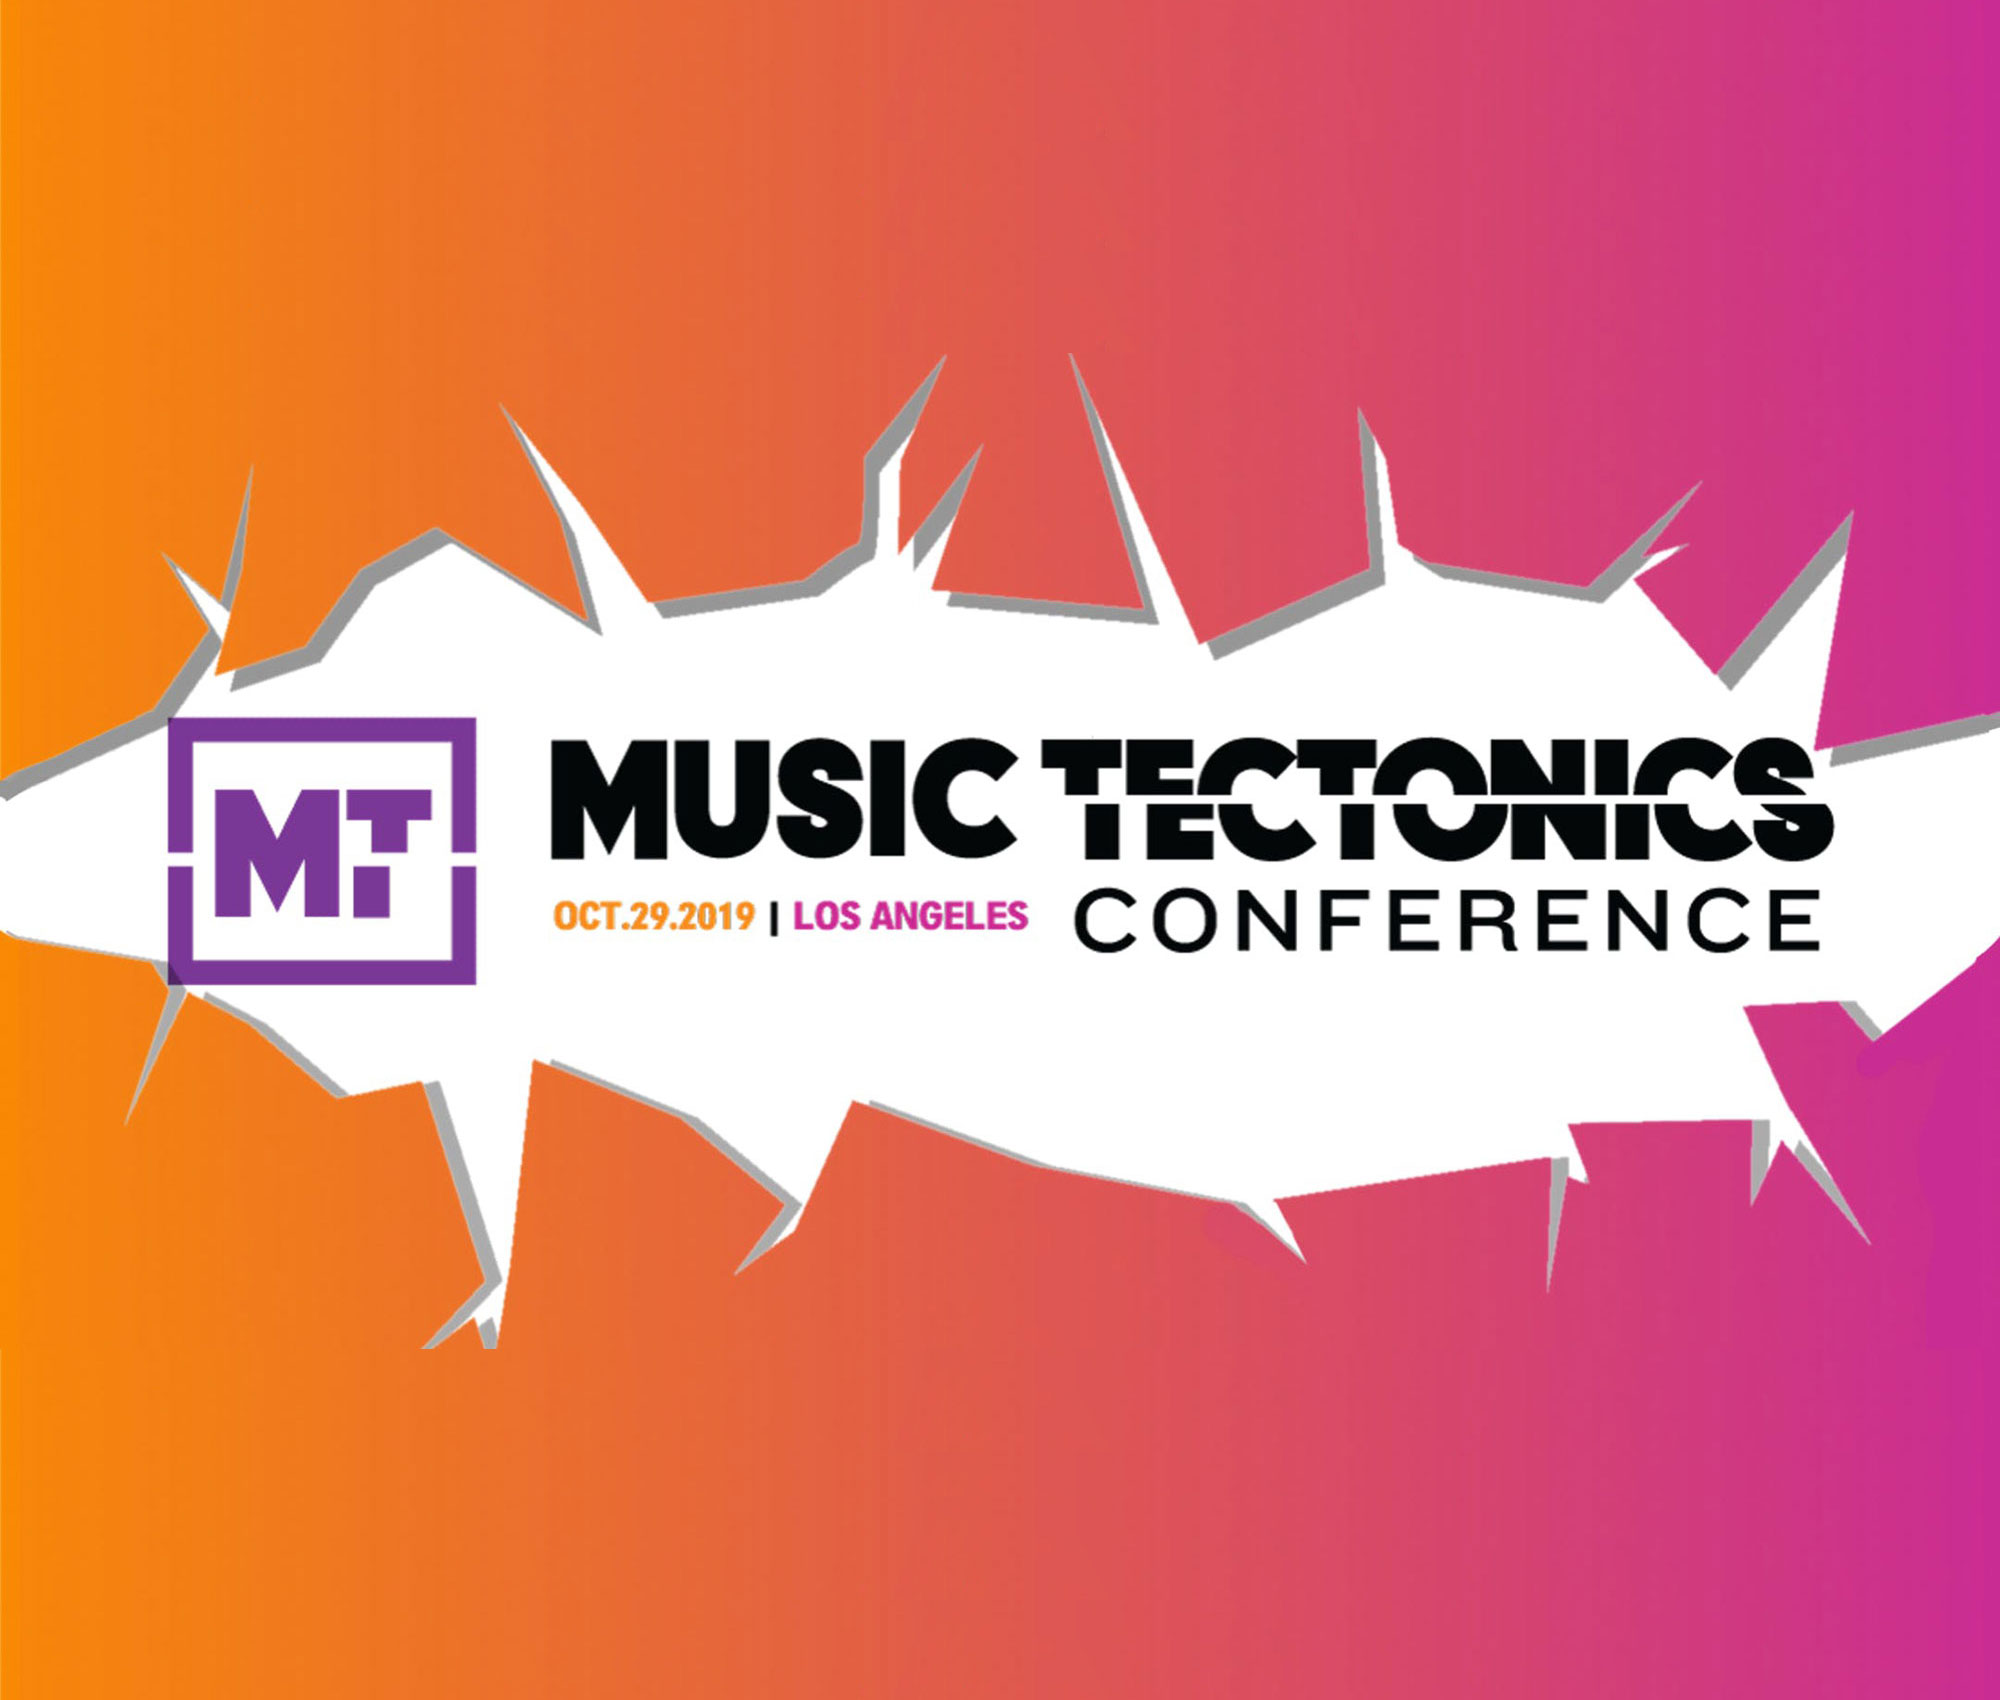 Music Tectonics Conference 2019